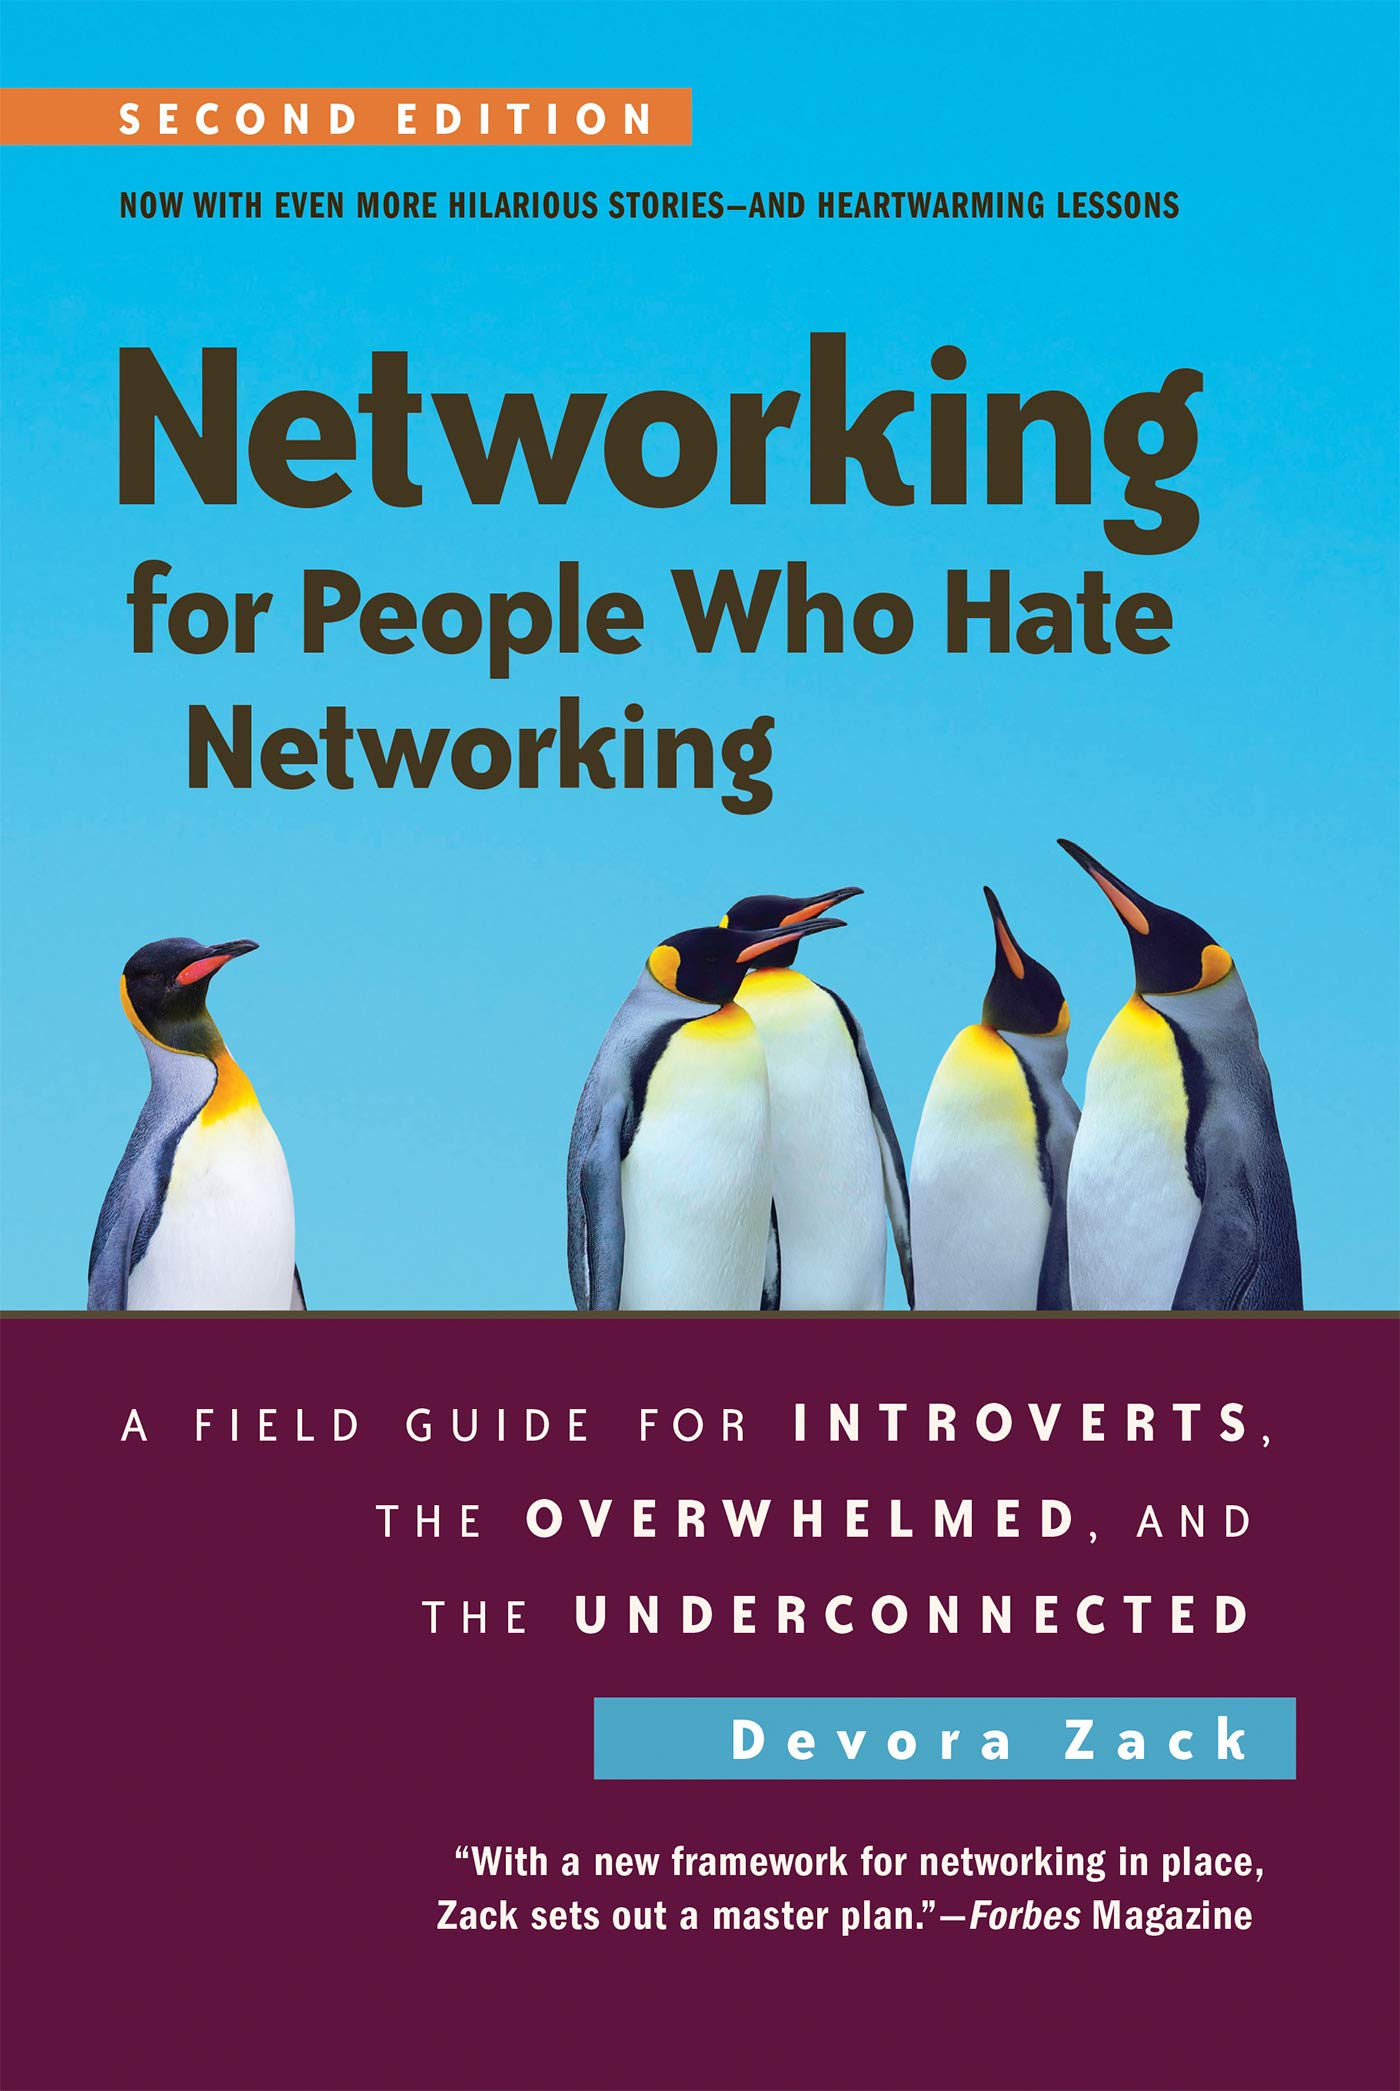 Networking for People Who Hate Networking, Second Edition: A Field Guide for Introverts, the Overwhelmed, and the…